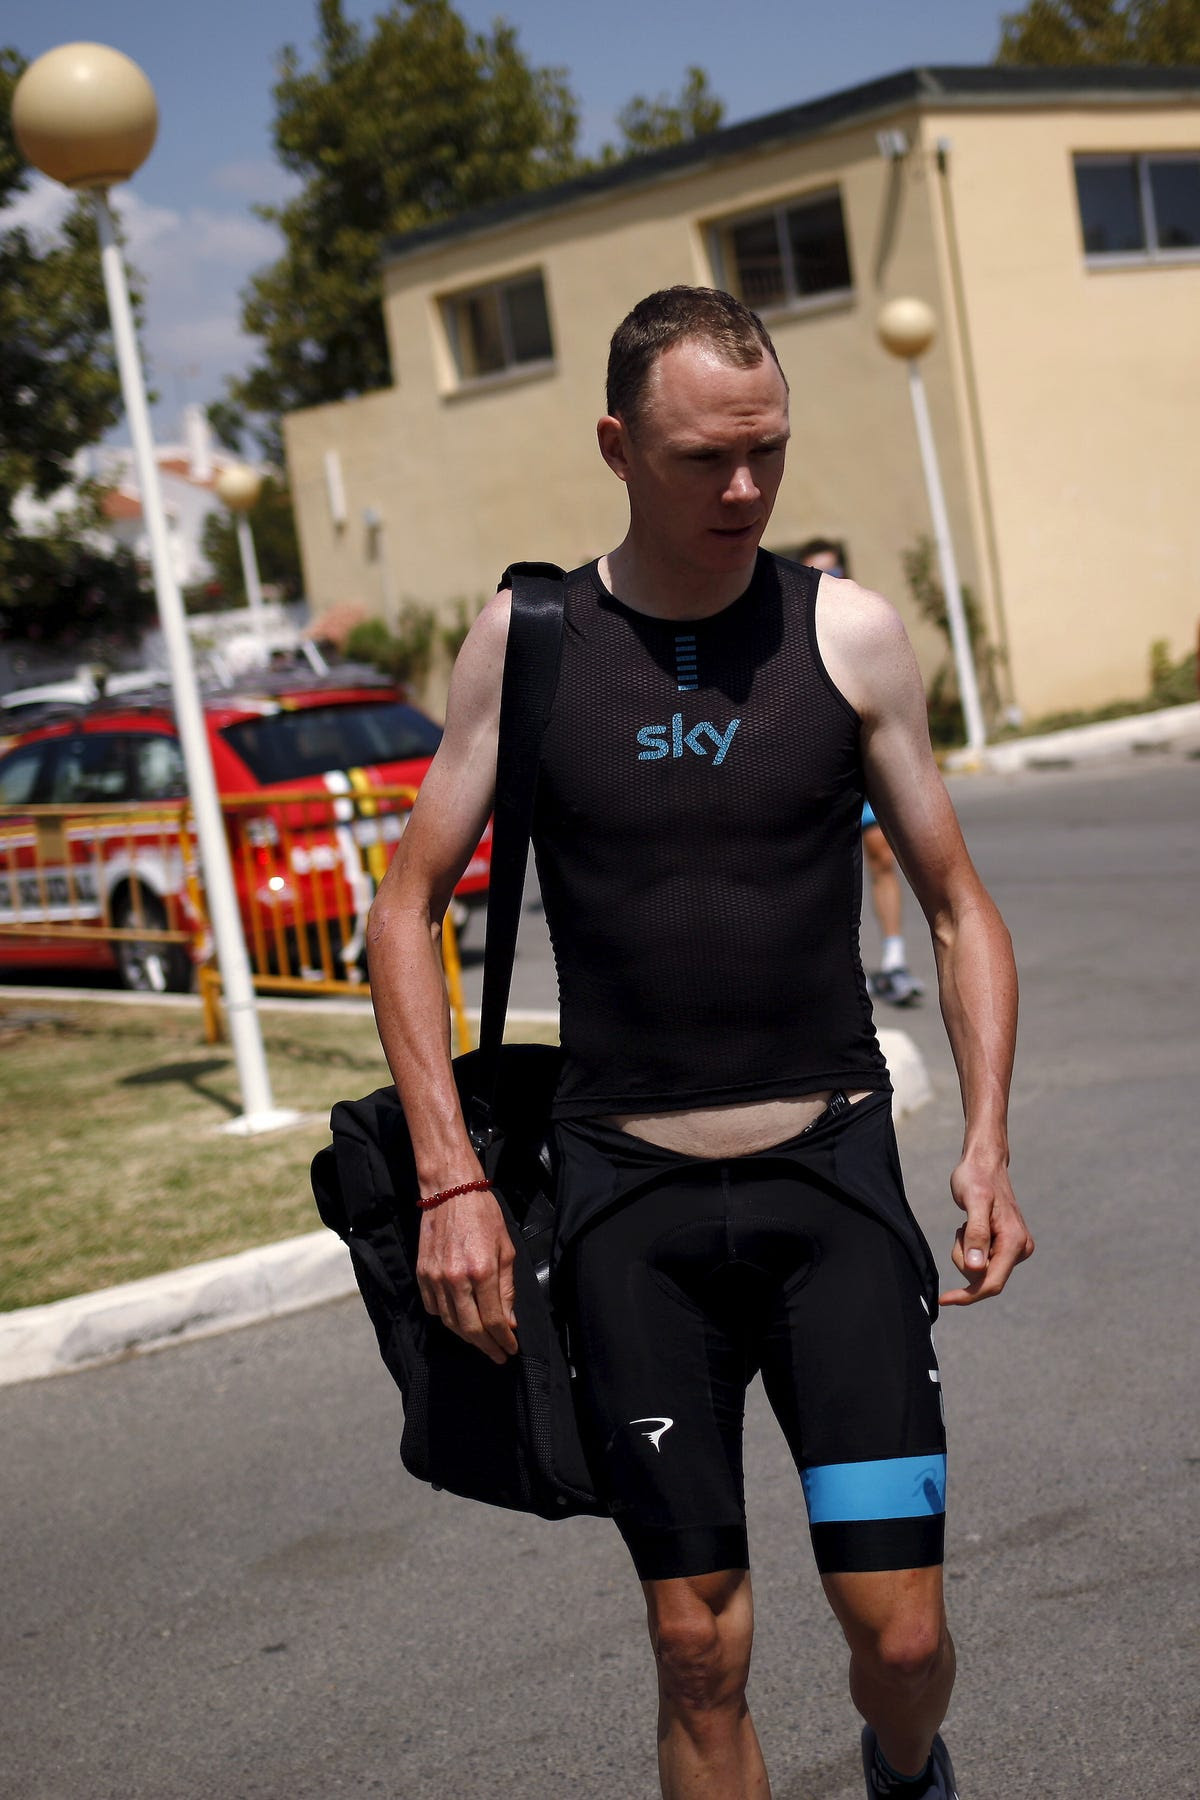 Froome, who is 6-1, went from 167 pounds in 2007 to 147 pounds in 2015, all while maintaining a similar sustained power output. This has helped Froome win races like the Tour de France, where a rider's power-to-weight ratio is critical to success.